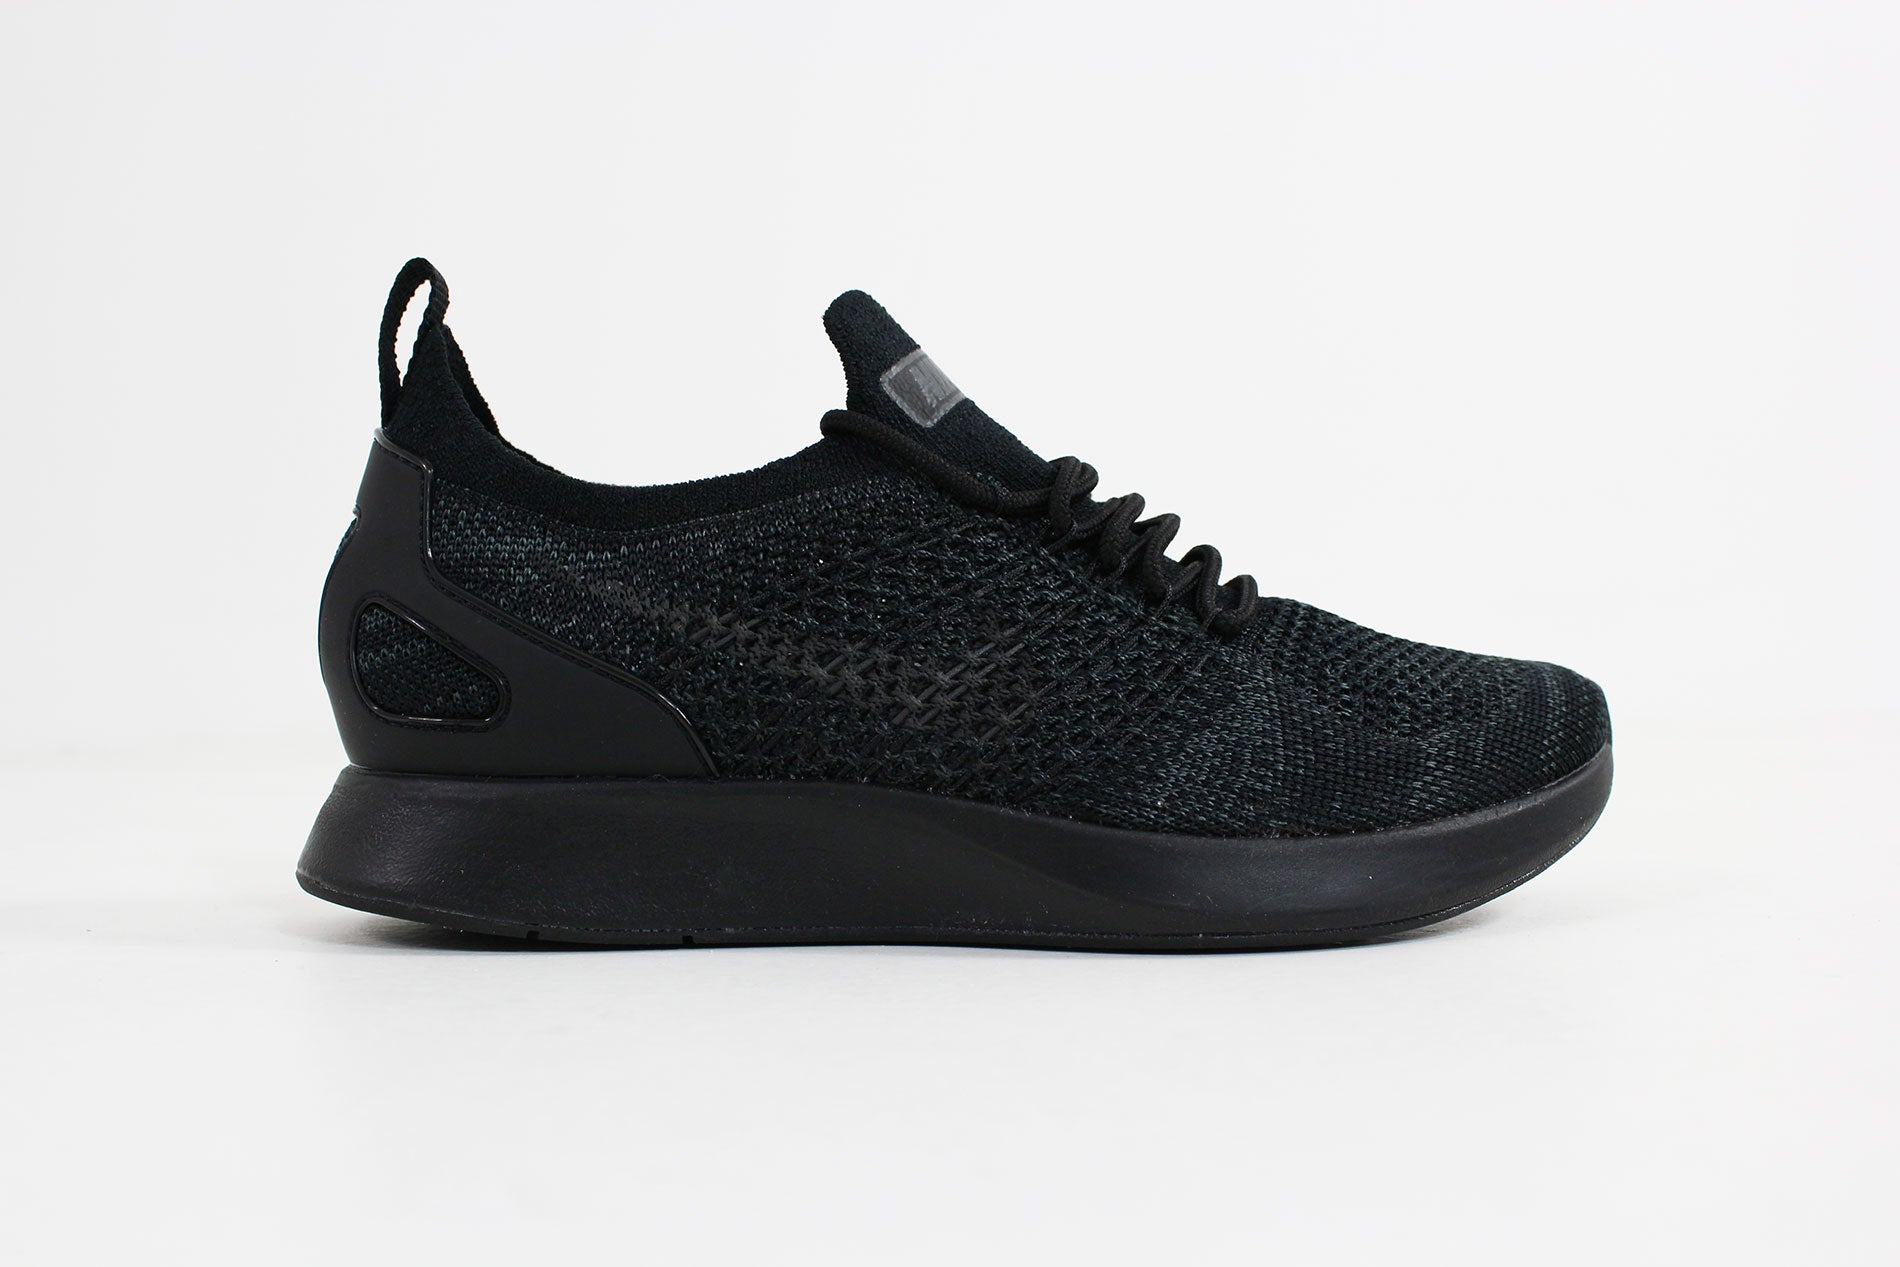 7d314fda8837 Nike - Air Zoom Mariah Flyknit Racer Women (Black  Anthracite) AA0521-004